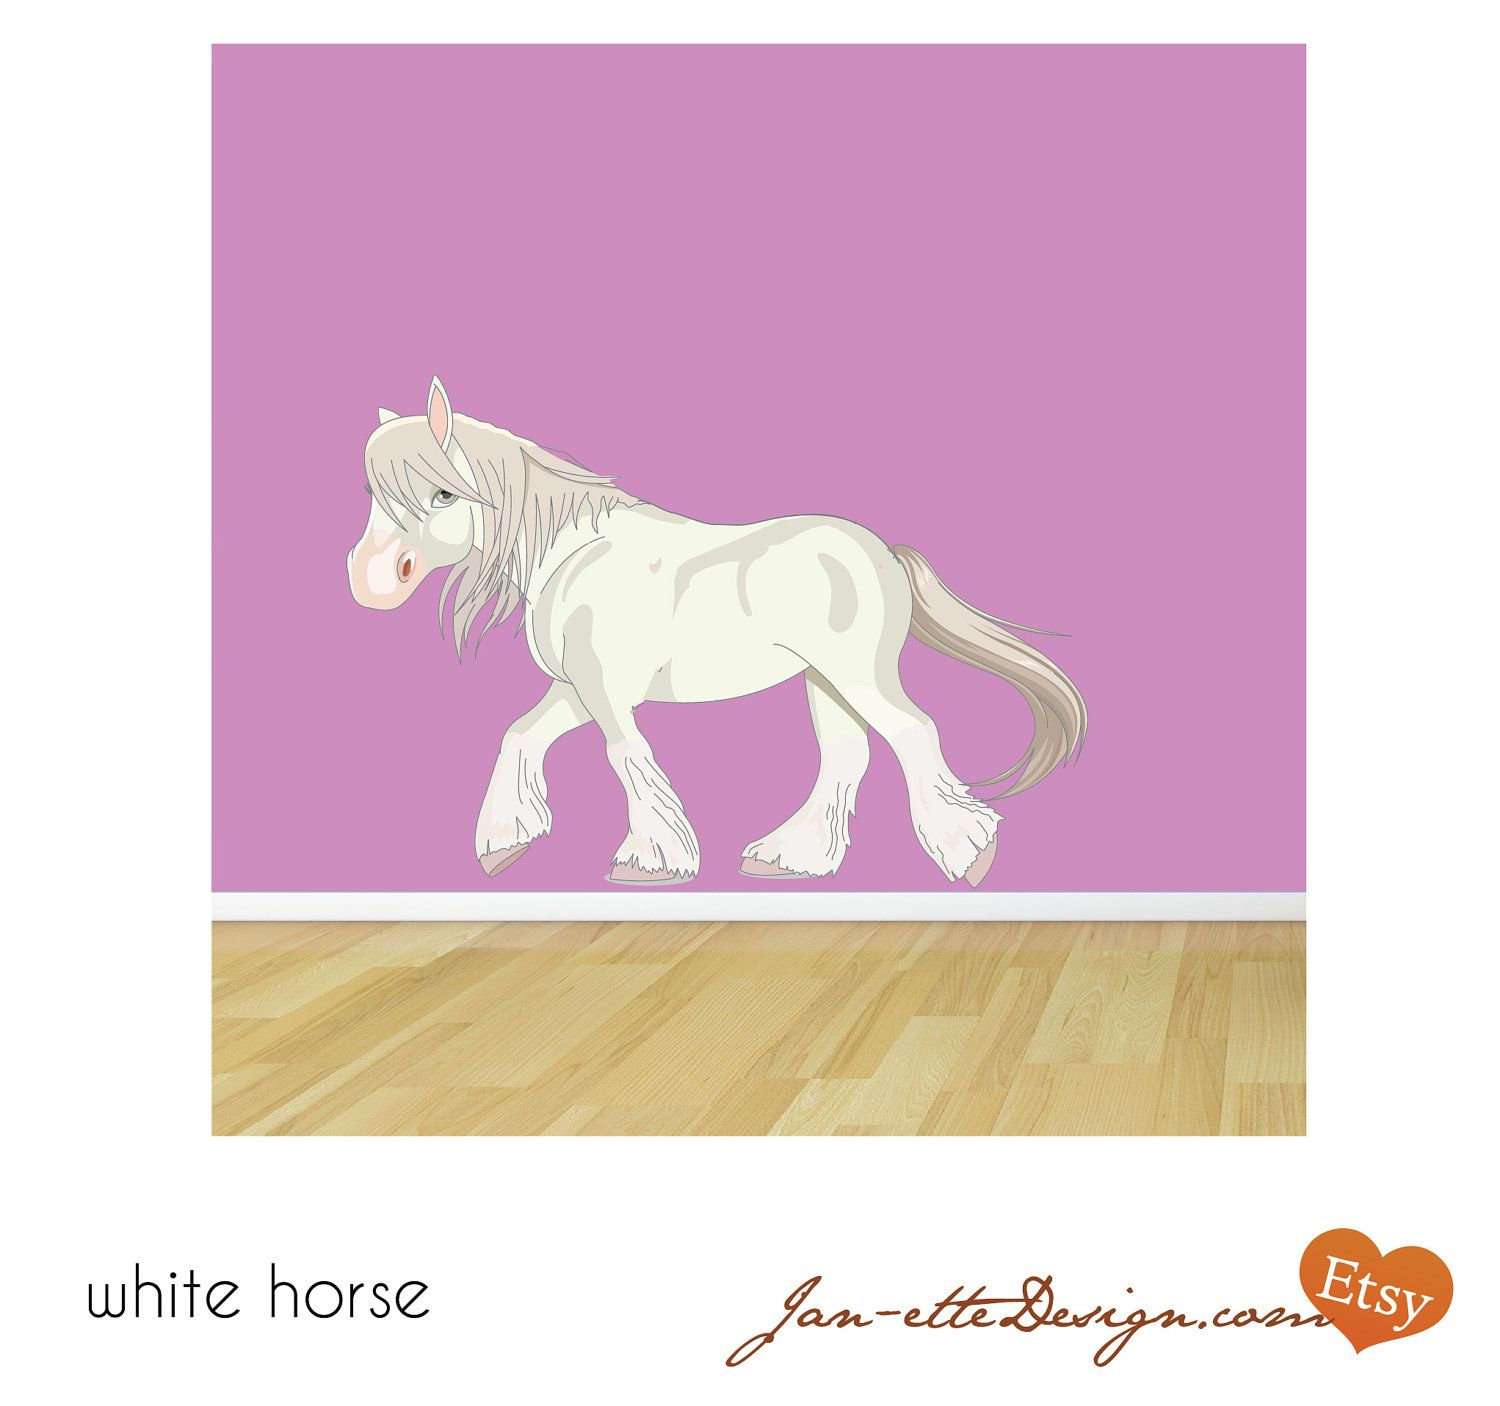 Large white horse fabric wall decal via etsy for Horse fabric for kids